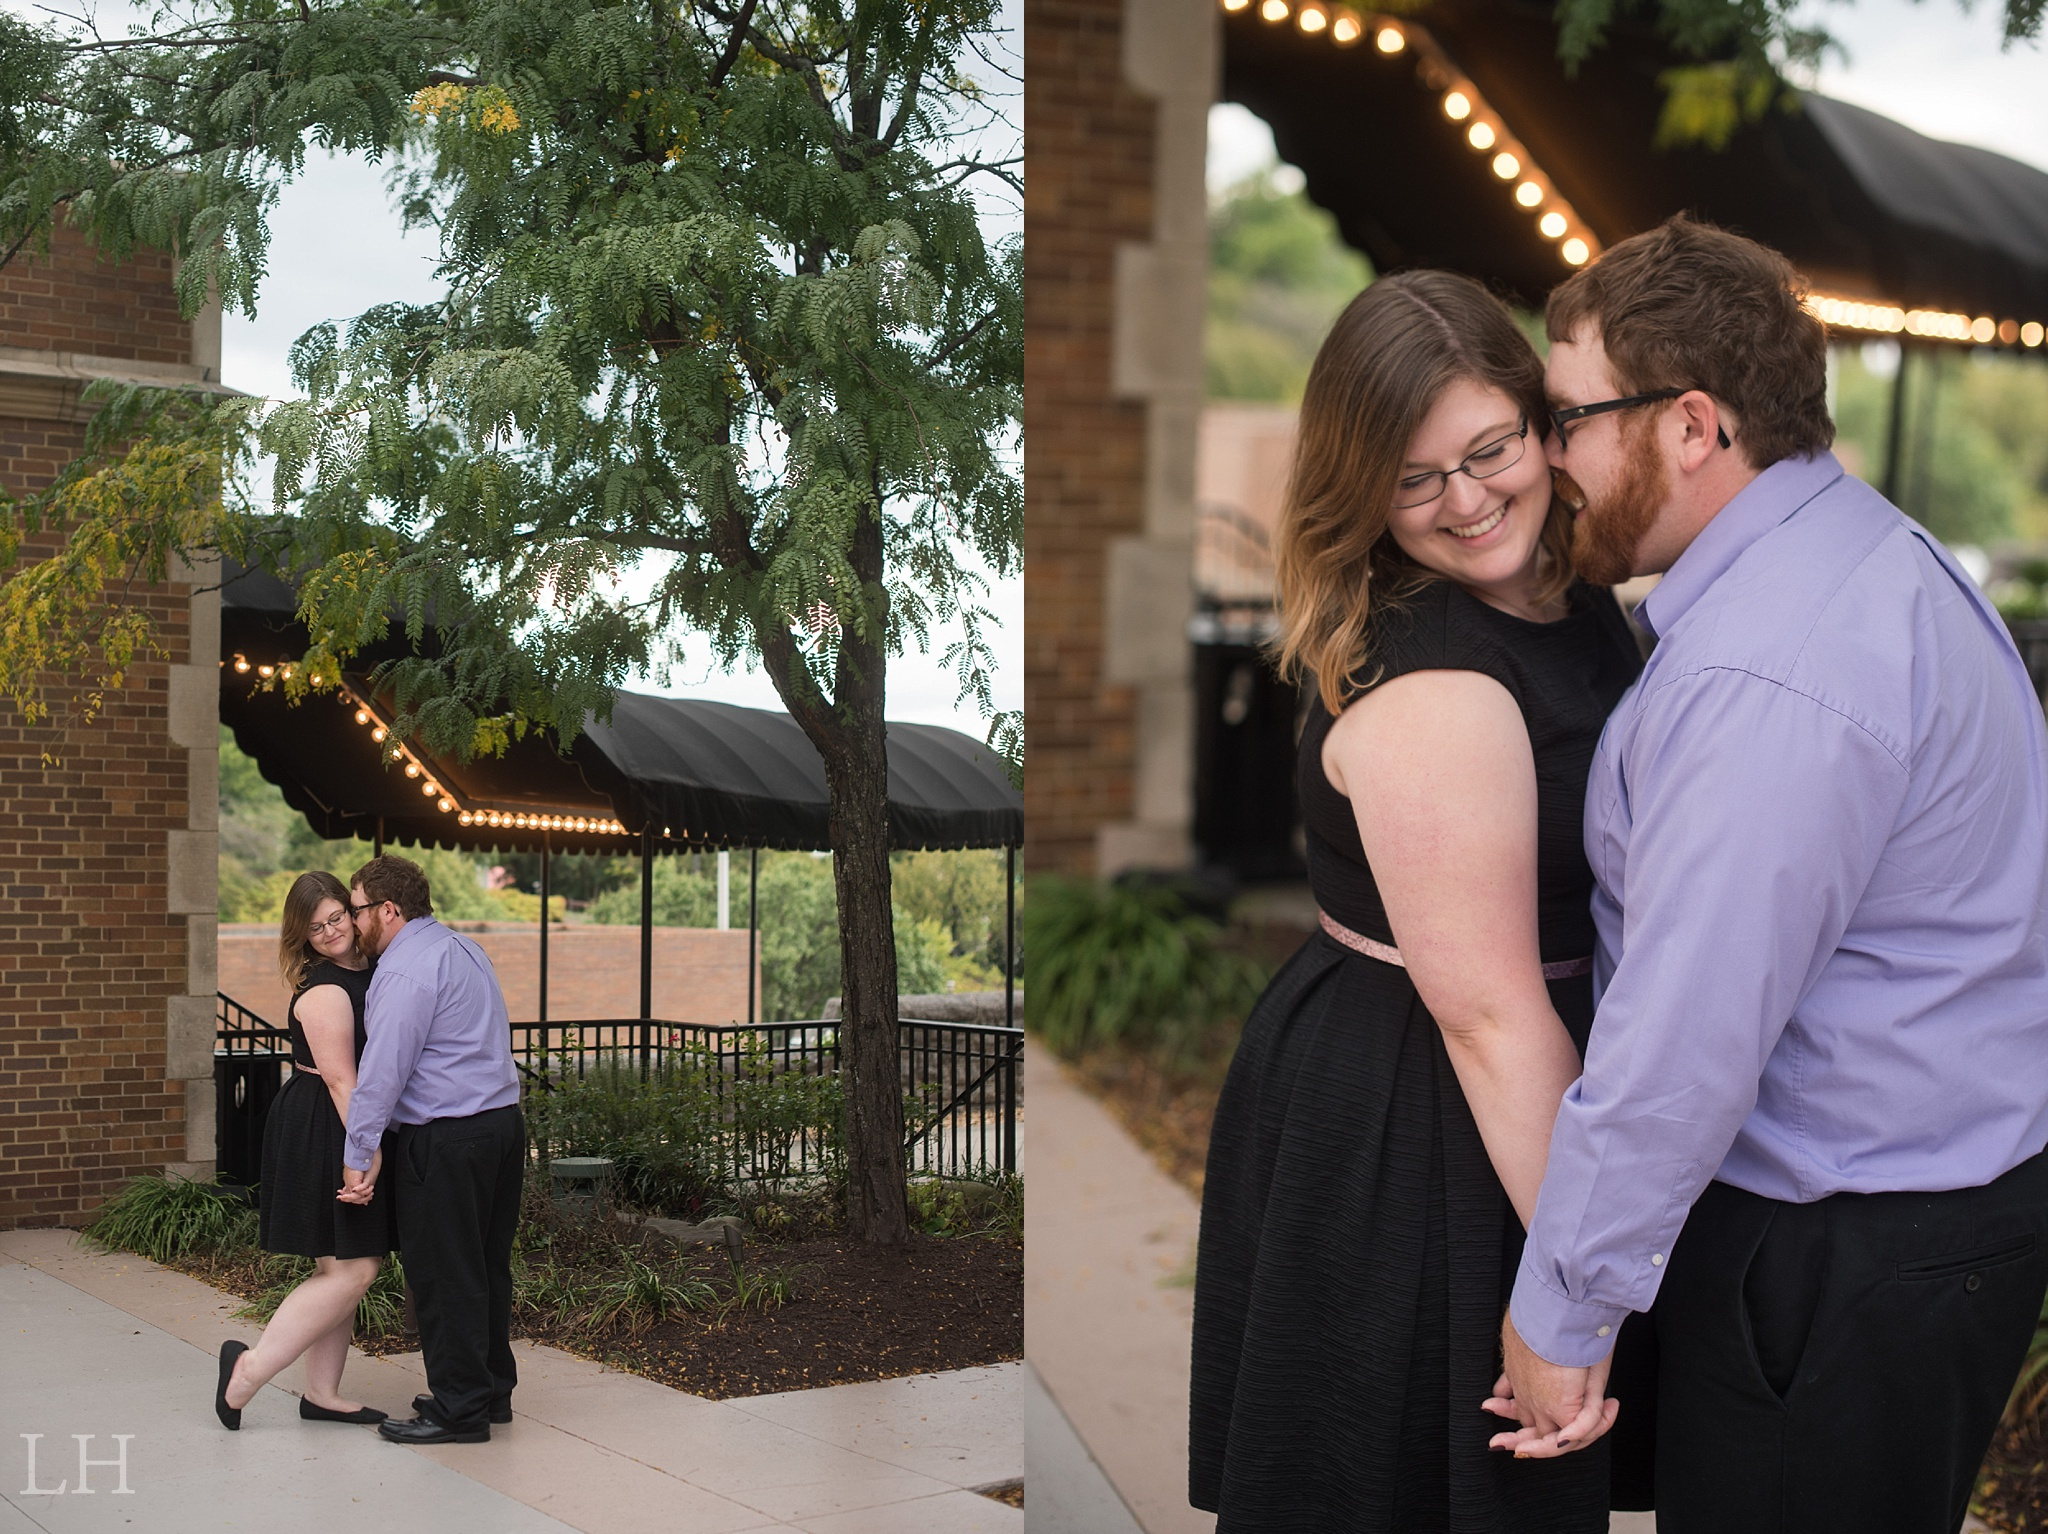 EmilyDustinEngaged_138_Blog.jpg